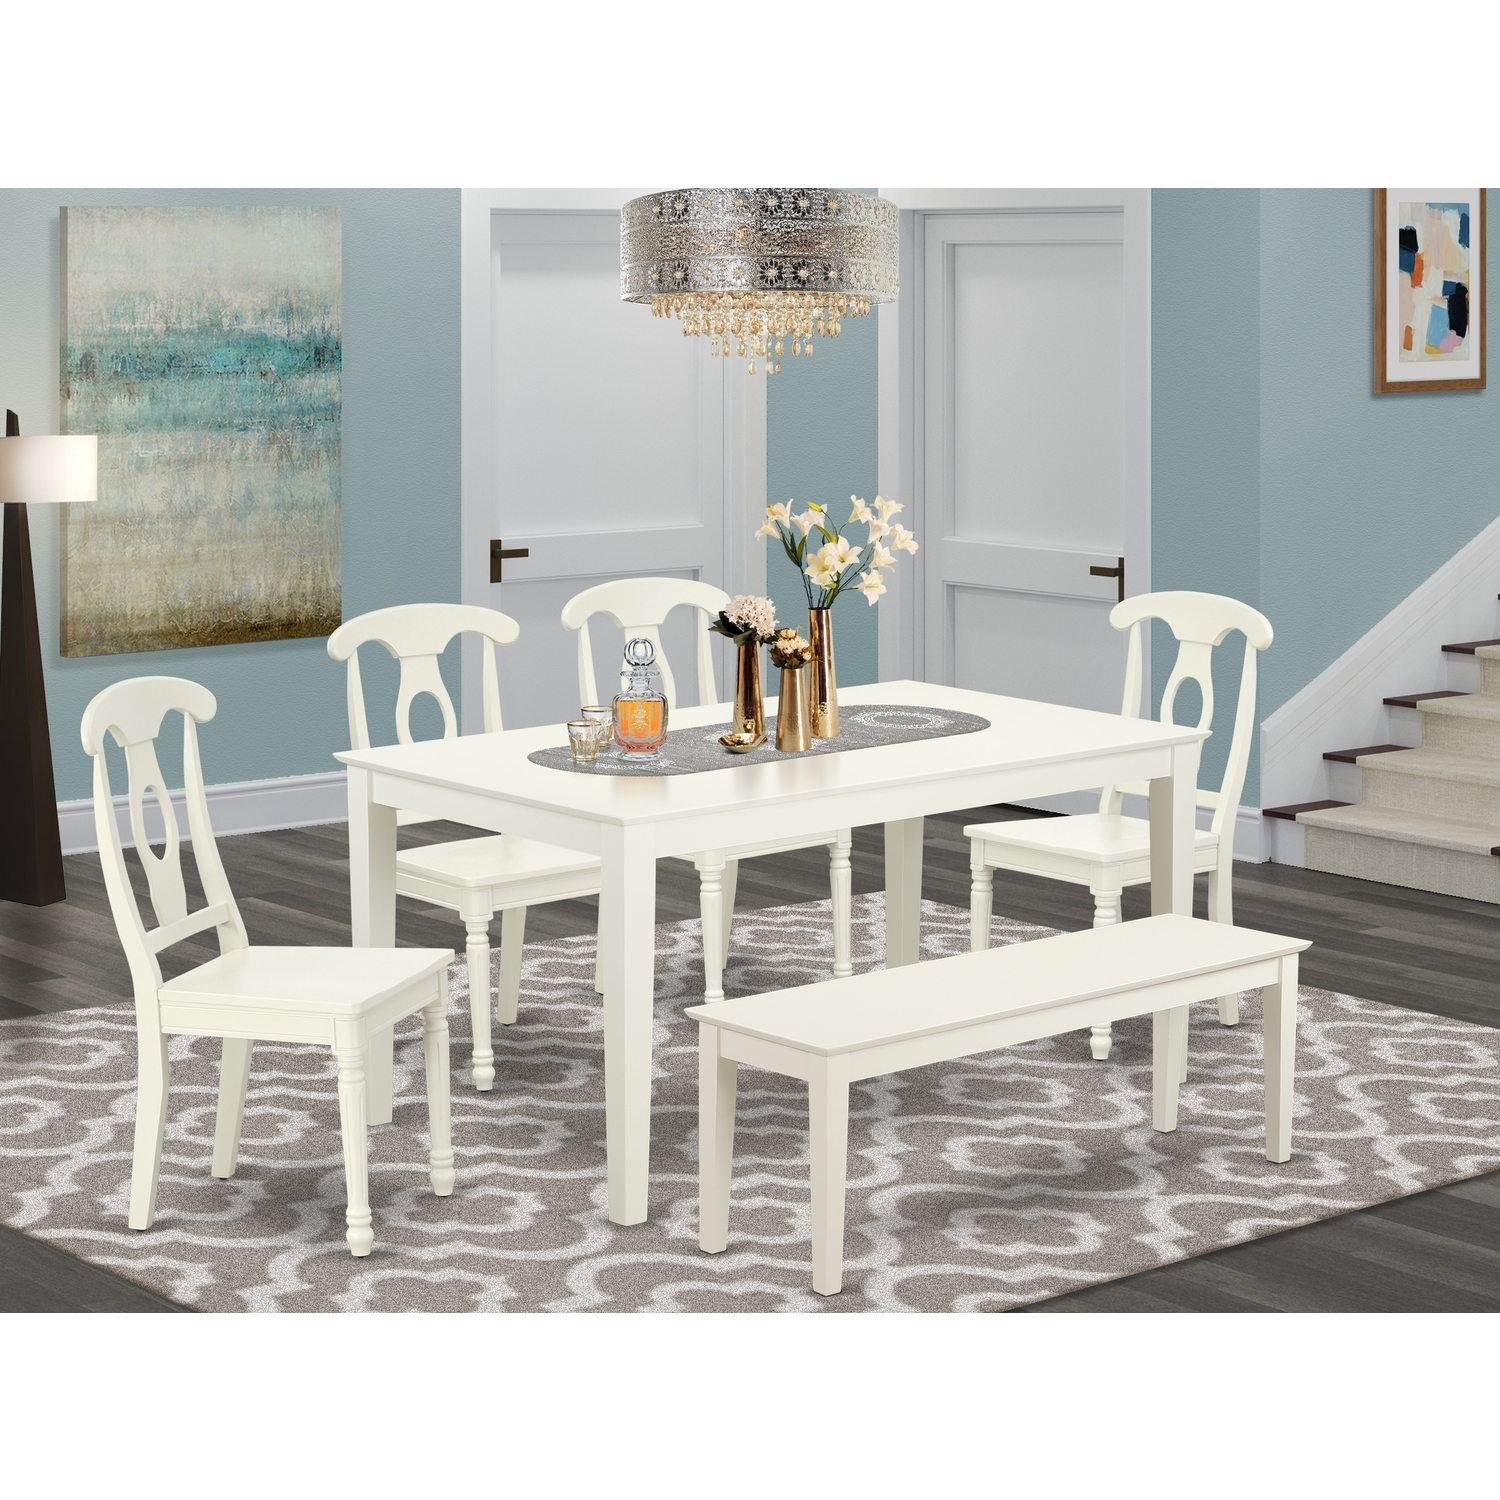 East West Furniture CAKE6-LWH-W 6PC Rectangular 60 inch Table and